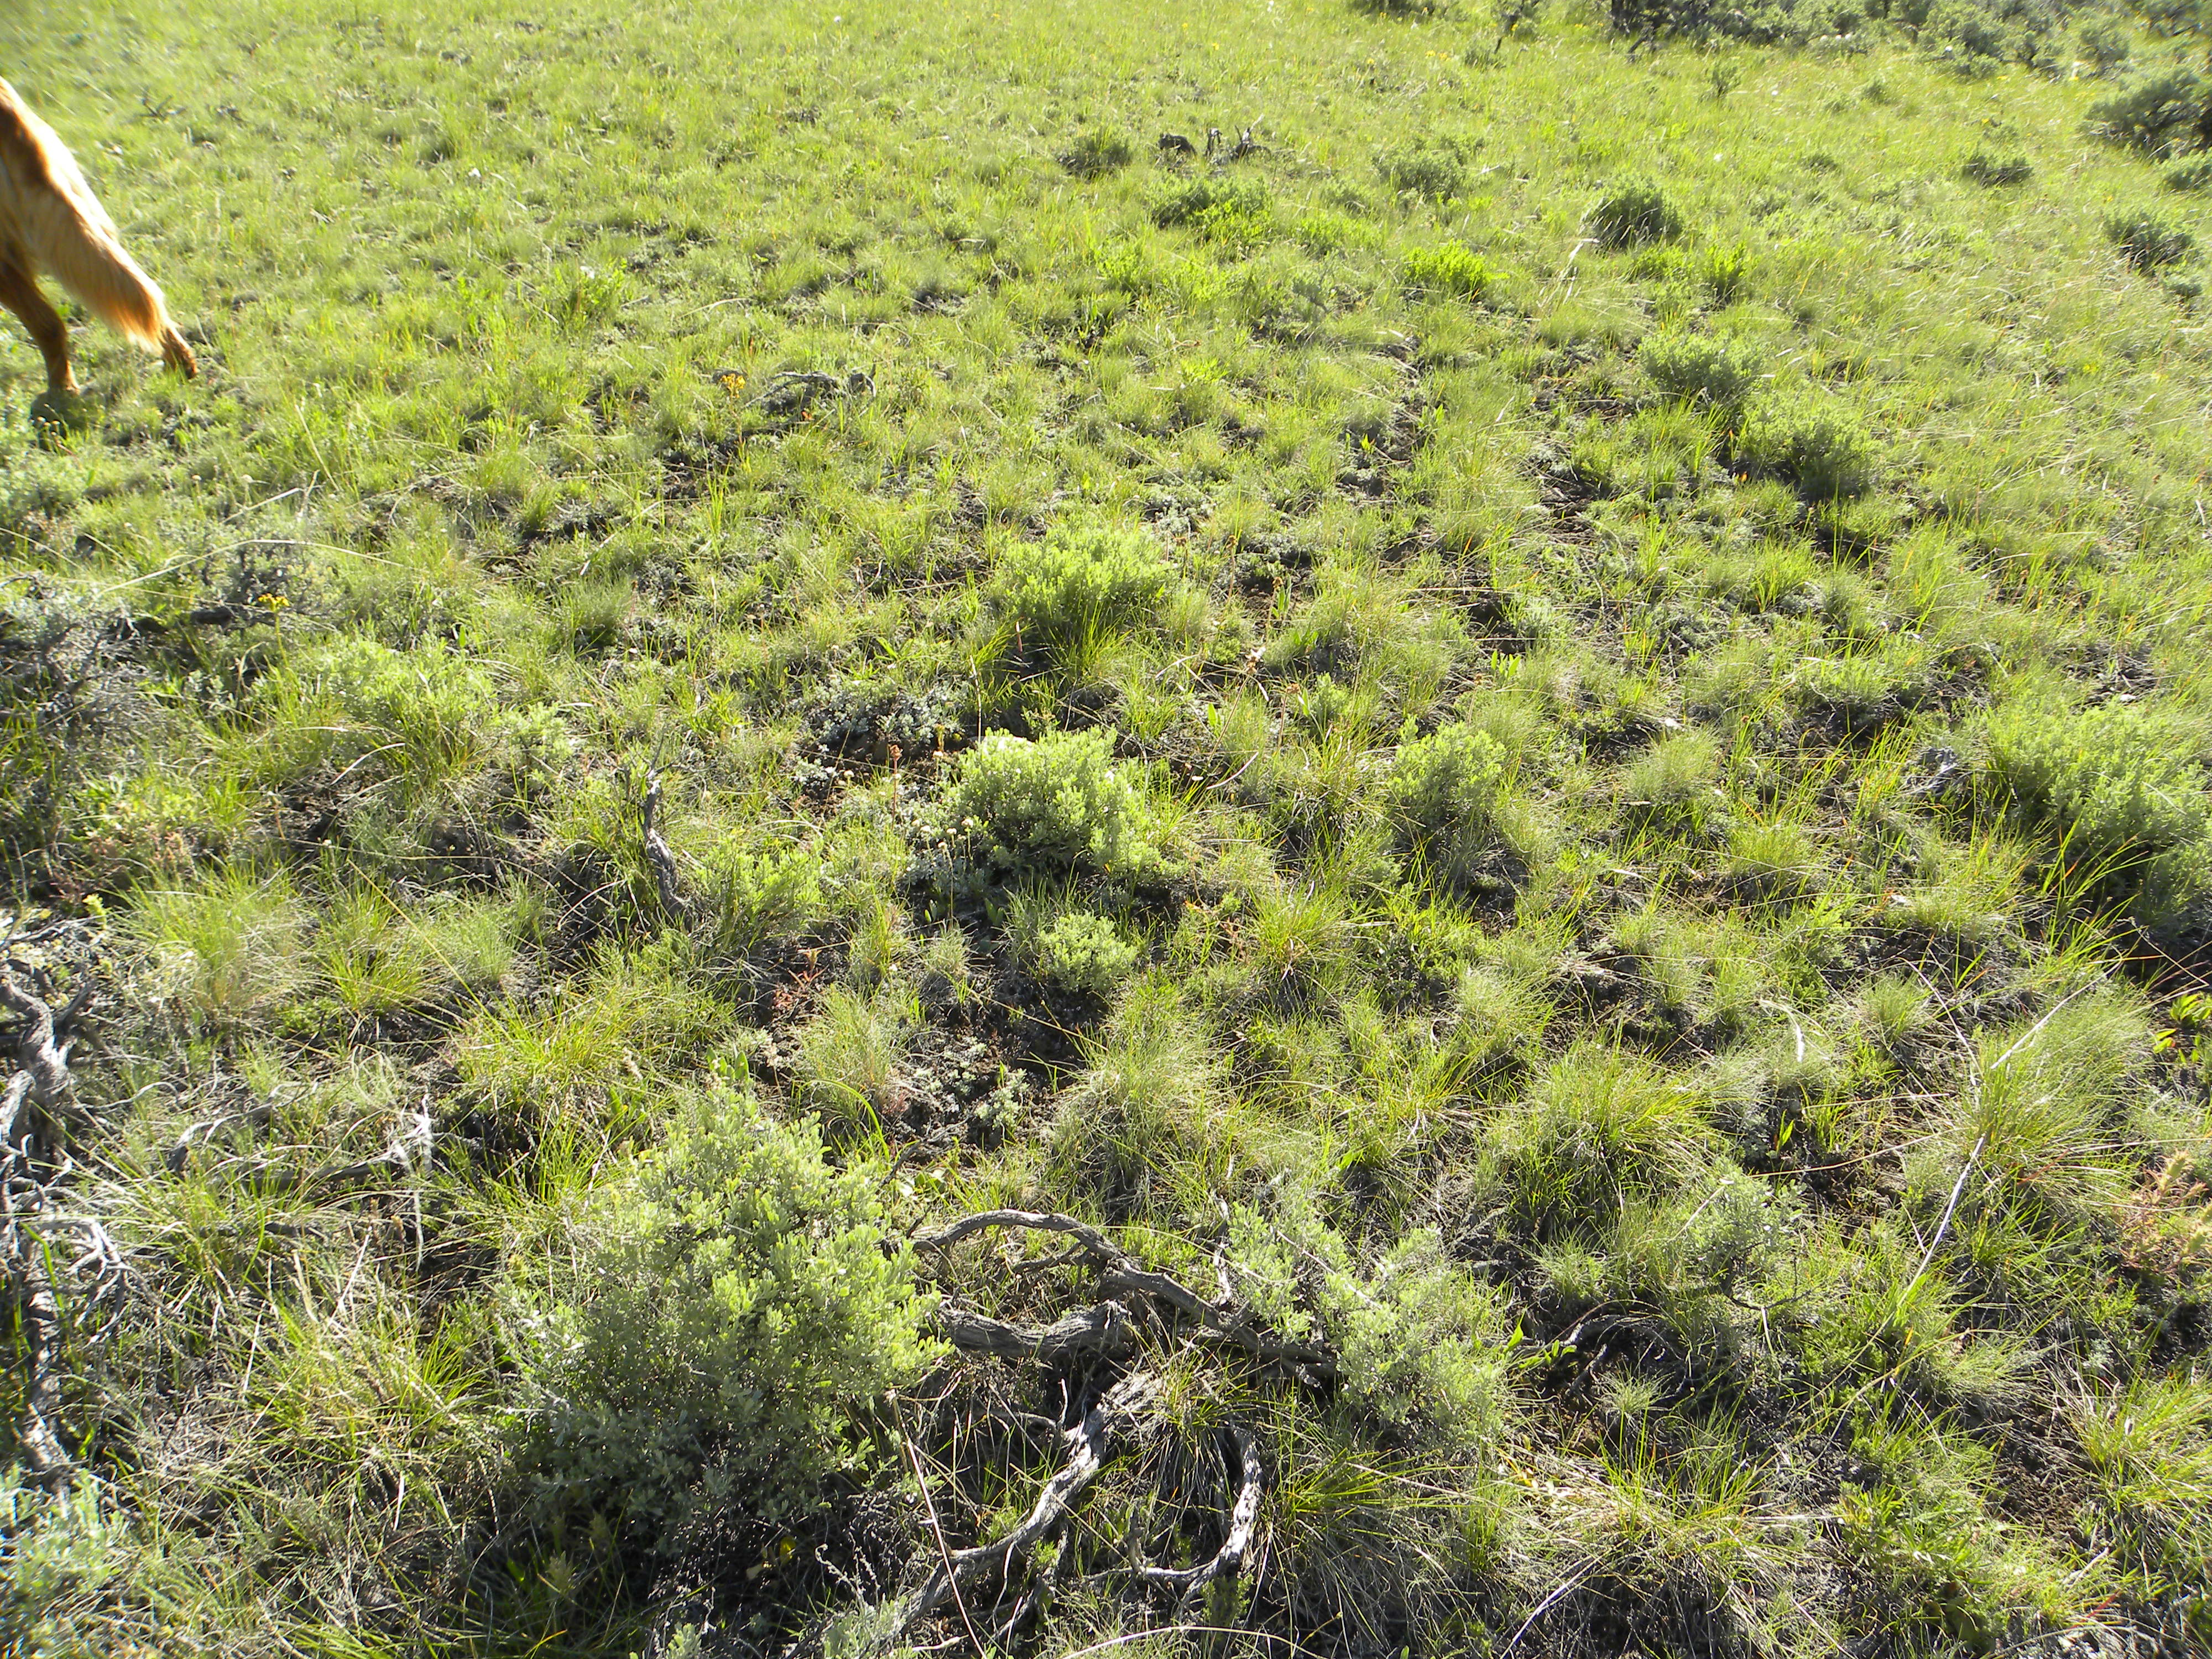 An example of a natural bunch grass meadow--nature's perfection